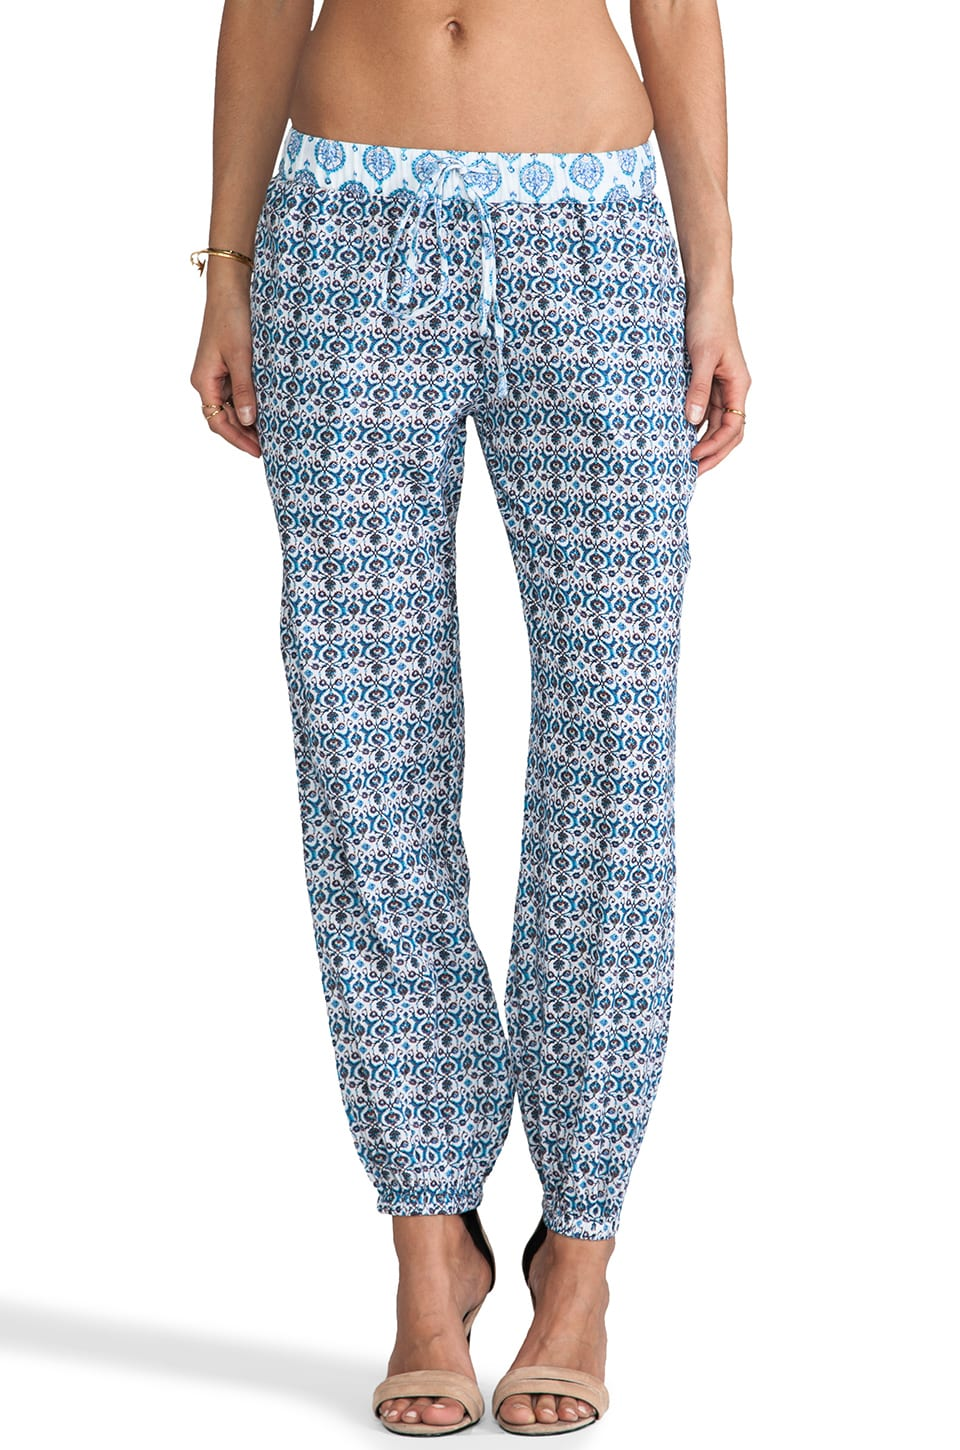 Basta Surf Mele Pant in Grecian Flower